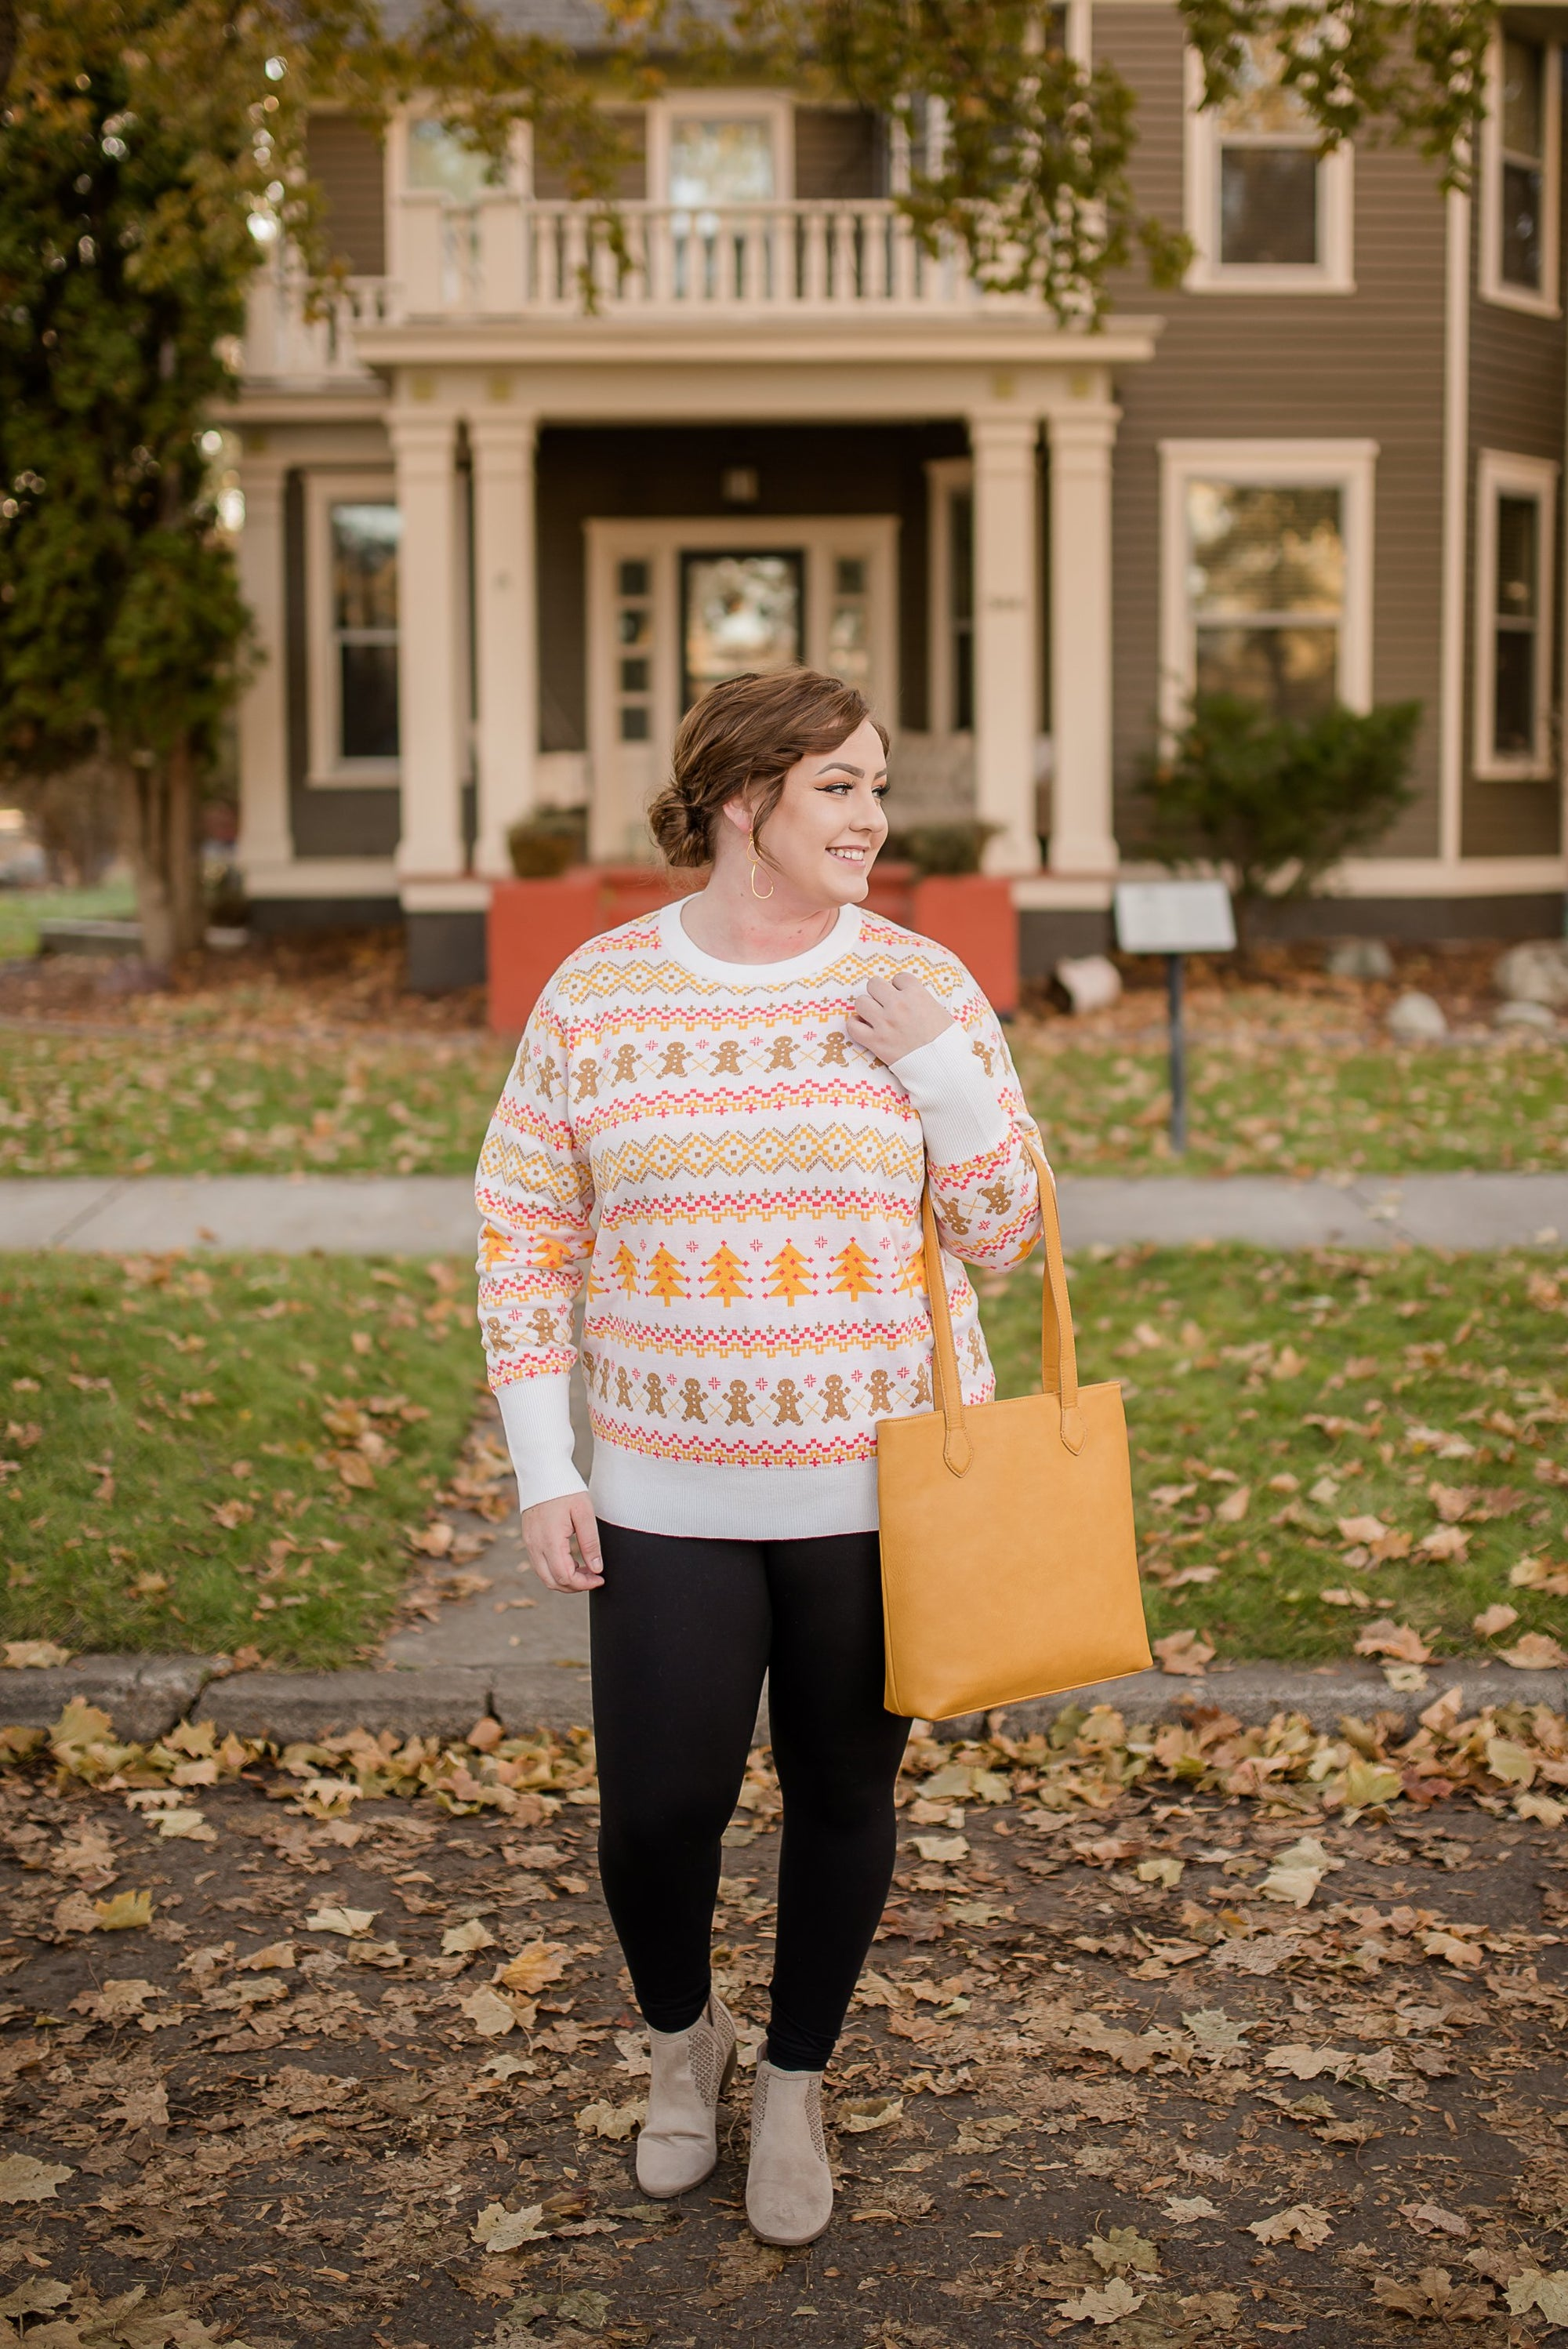 Catch Me If You Can Gingerbread Man Sweater-[option4]-[option5]-[option6]-[option7]-[option8]-Womens-Clothing-Shop